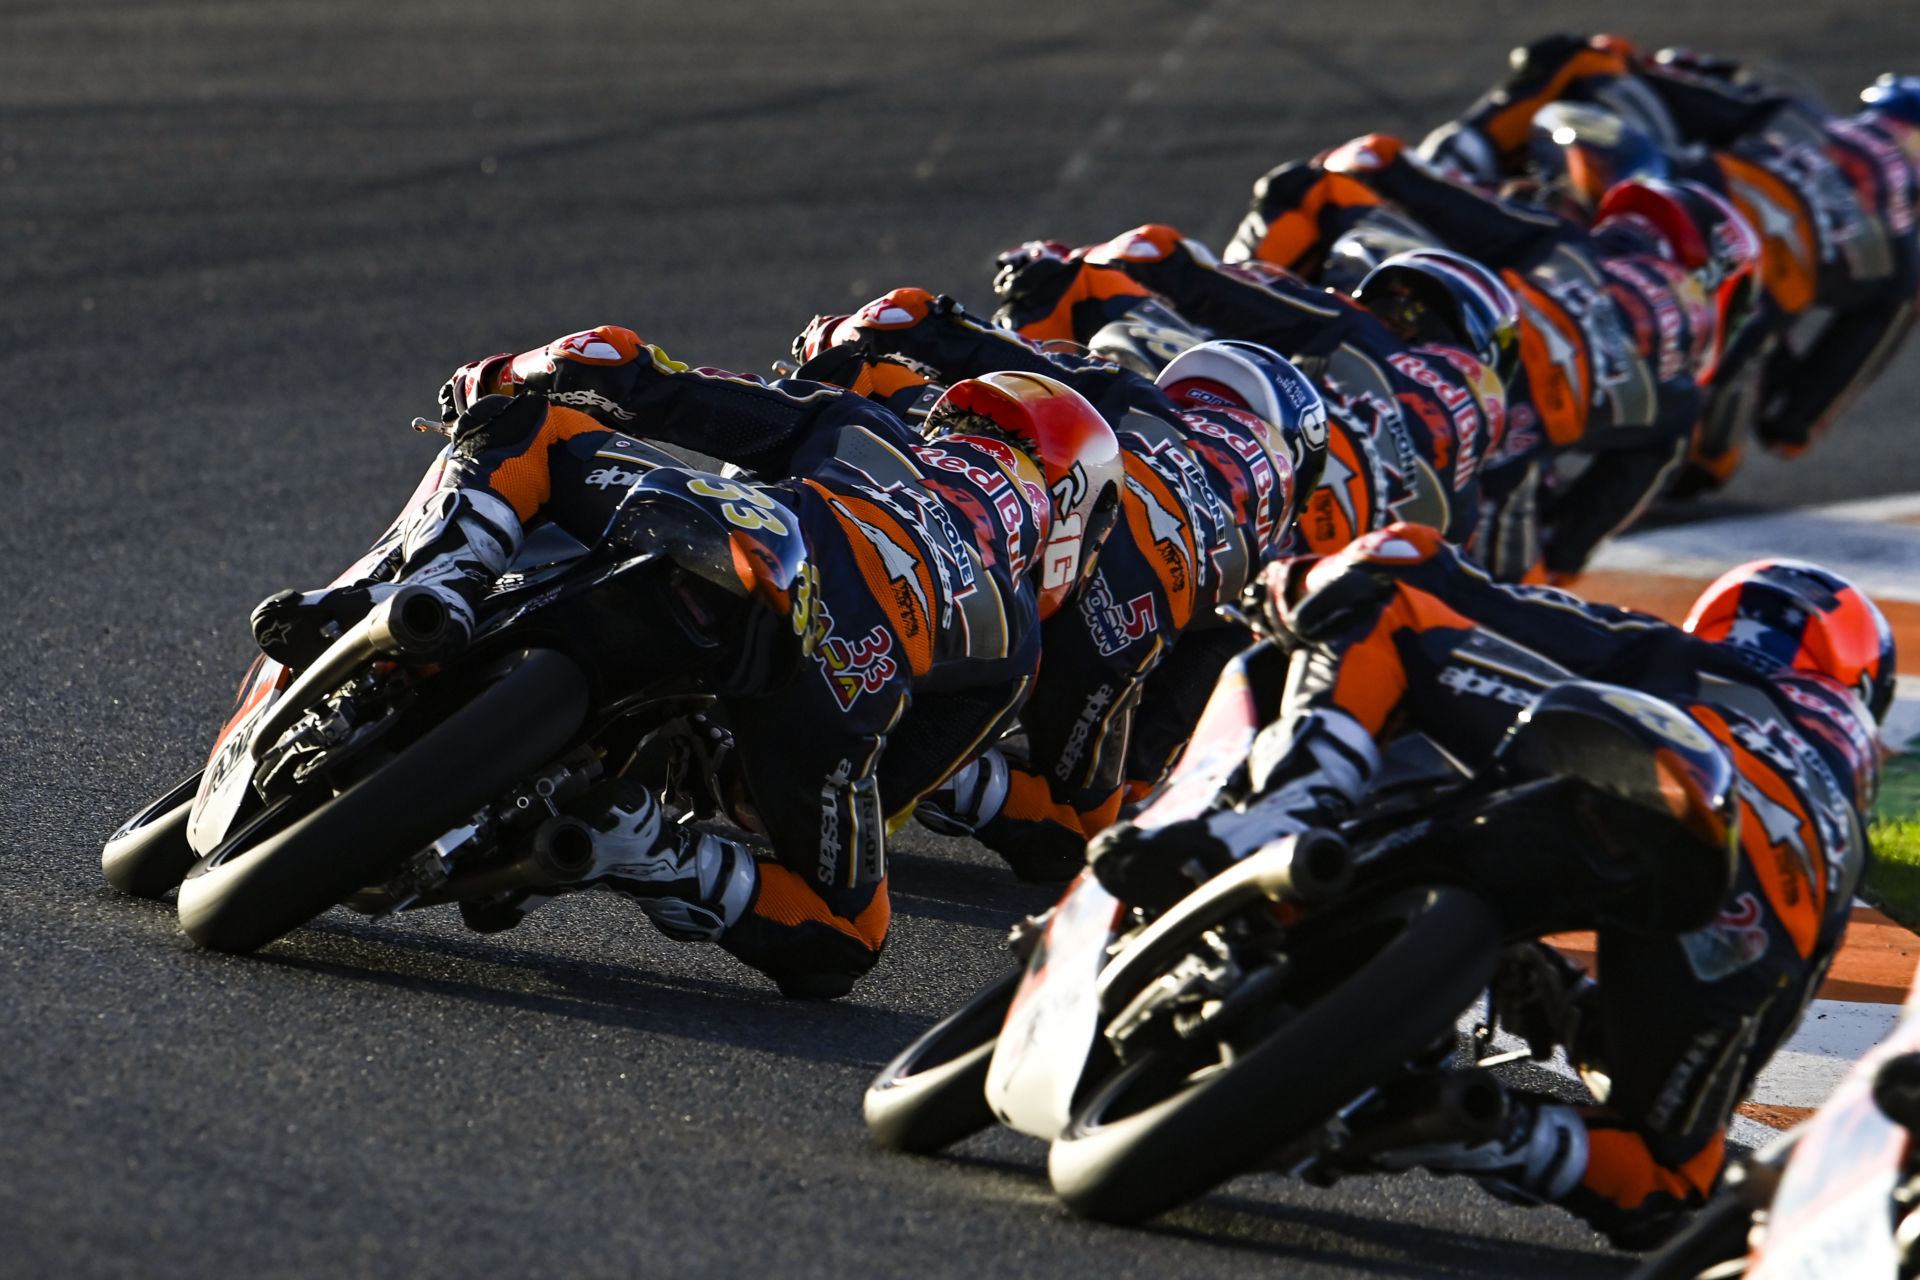 Red Bull MotoGP Rookies in action during Race One at Valencia #1. Photo courtesy Red Bull.